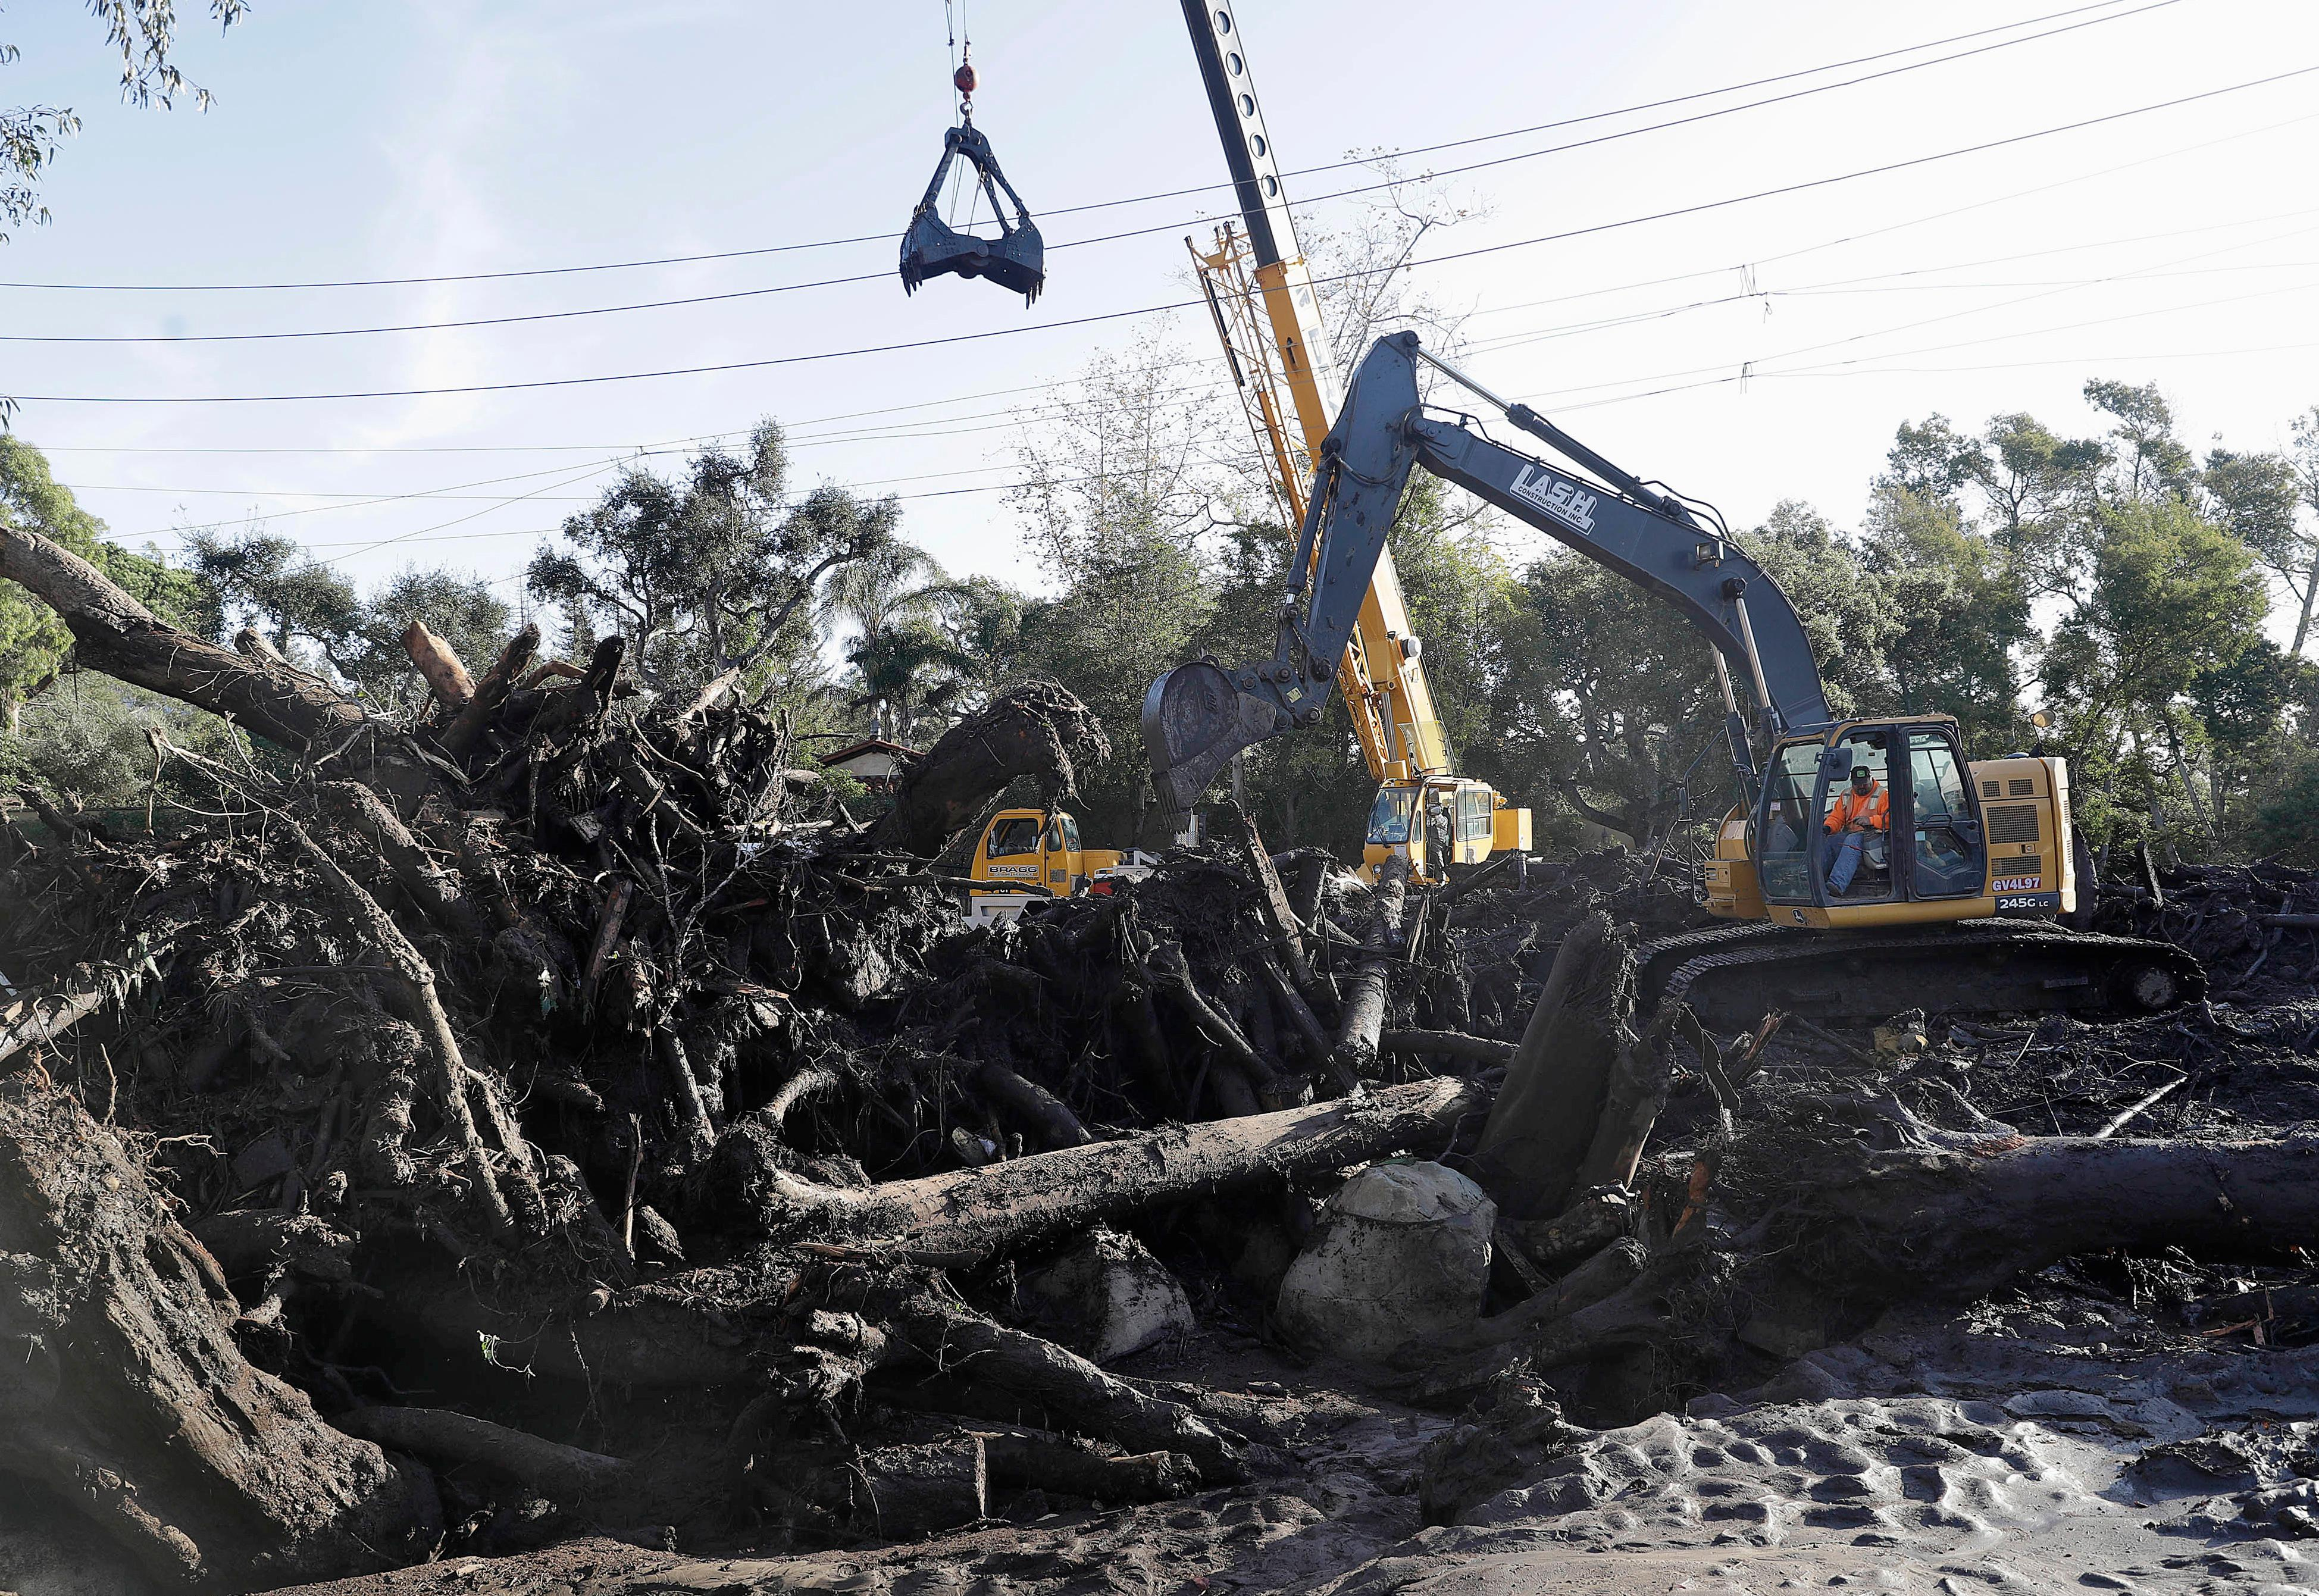 An excavator removes debris from an area damaged by storms in Montecito, Calif., Wednesday, Jan. 10, 2018. Dozens of homes were swept away or heavily damaged and several people were killed Tuesday as downpours sent mud and boulders roaring down hills stripped of vegetation by a gigantic wildfire that raged in Southern California last month. (AP Photo/Marcio Jose Sanchez)